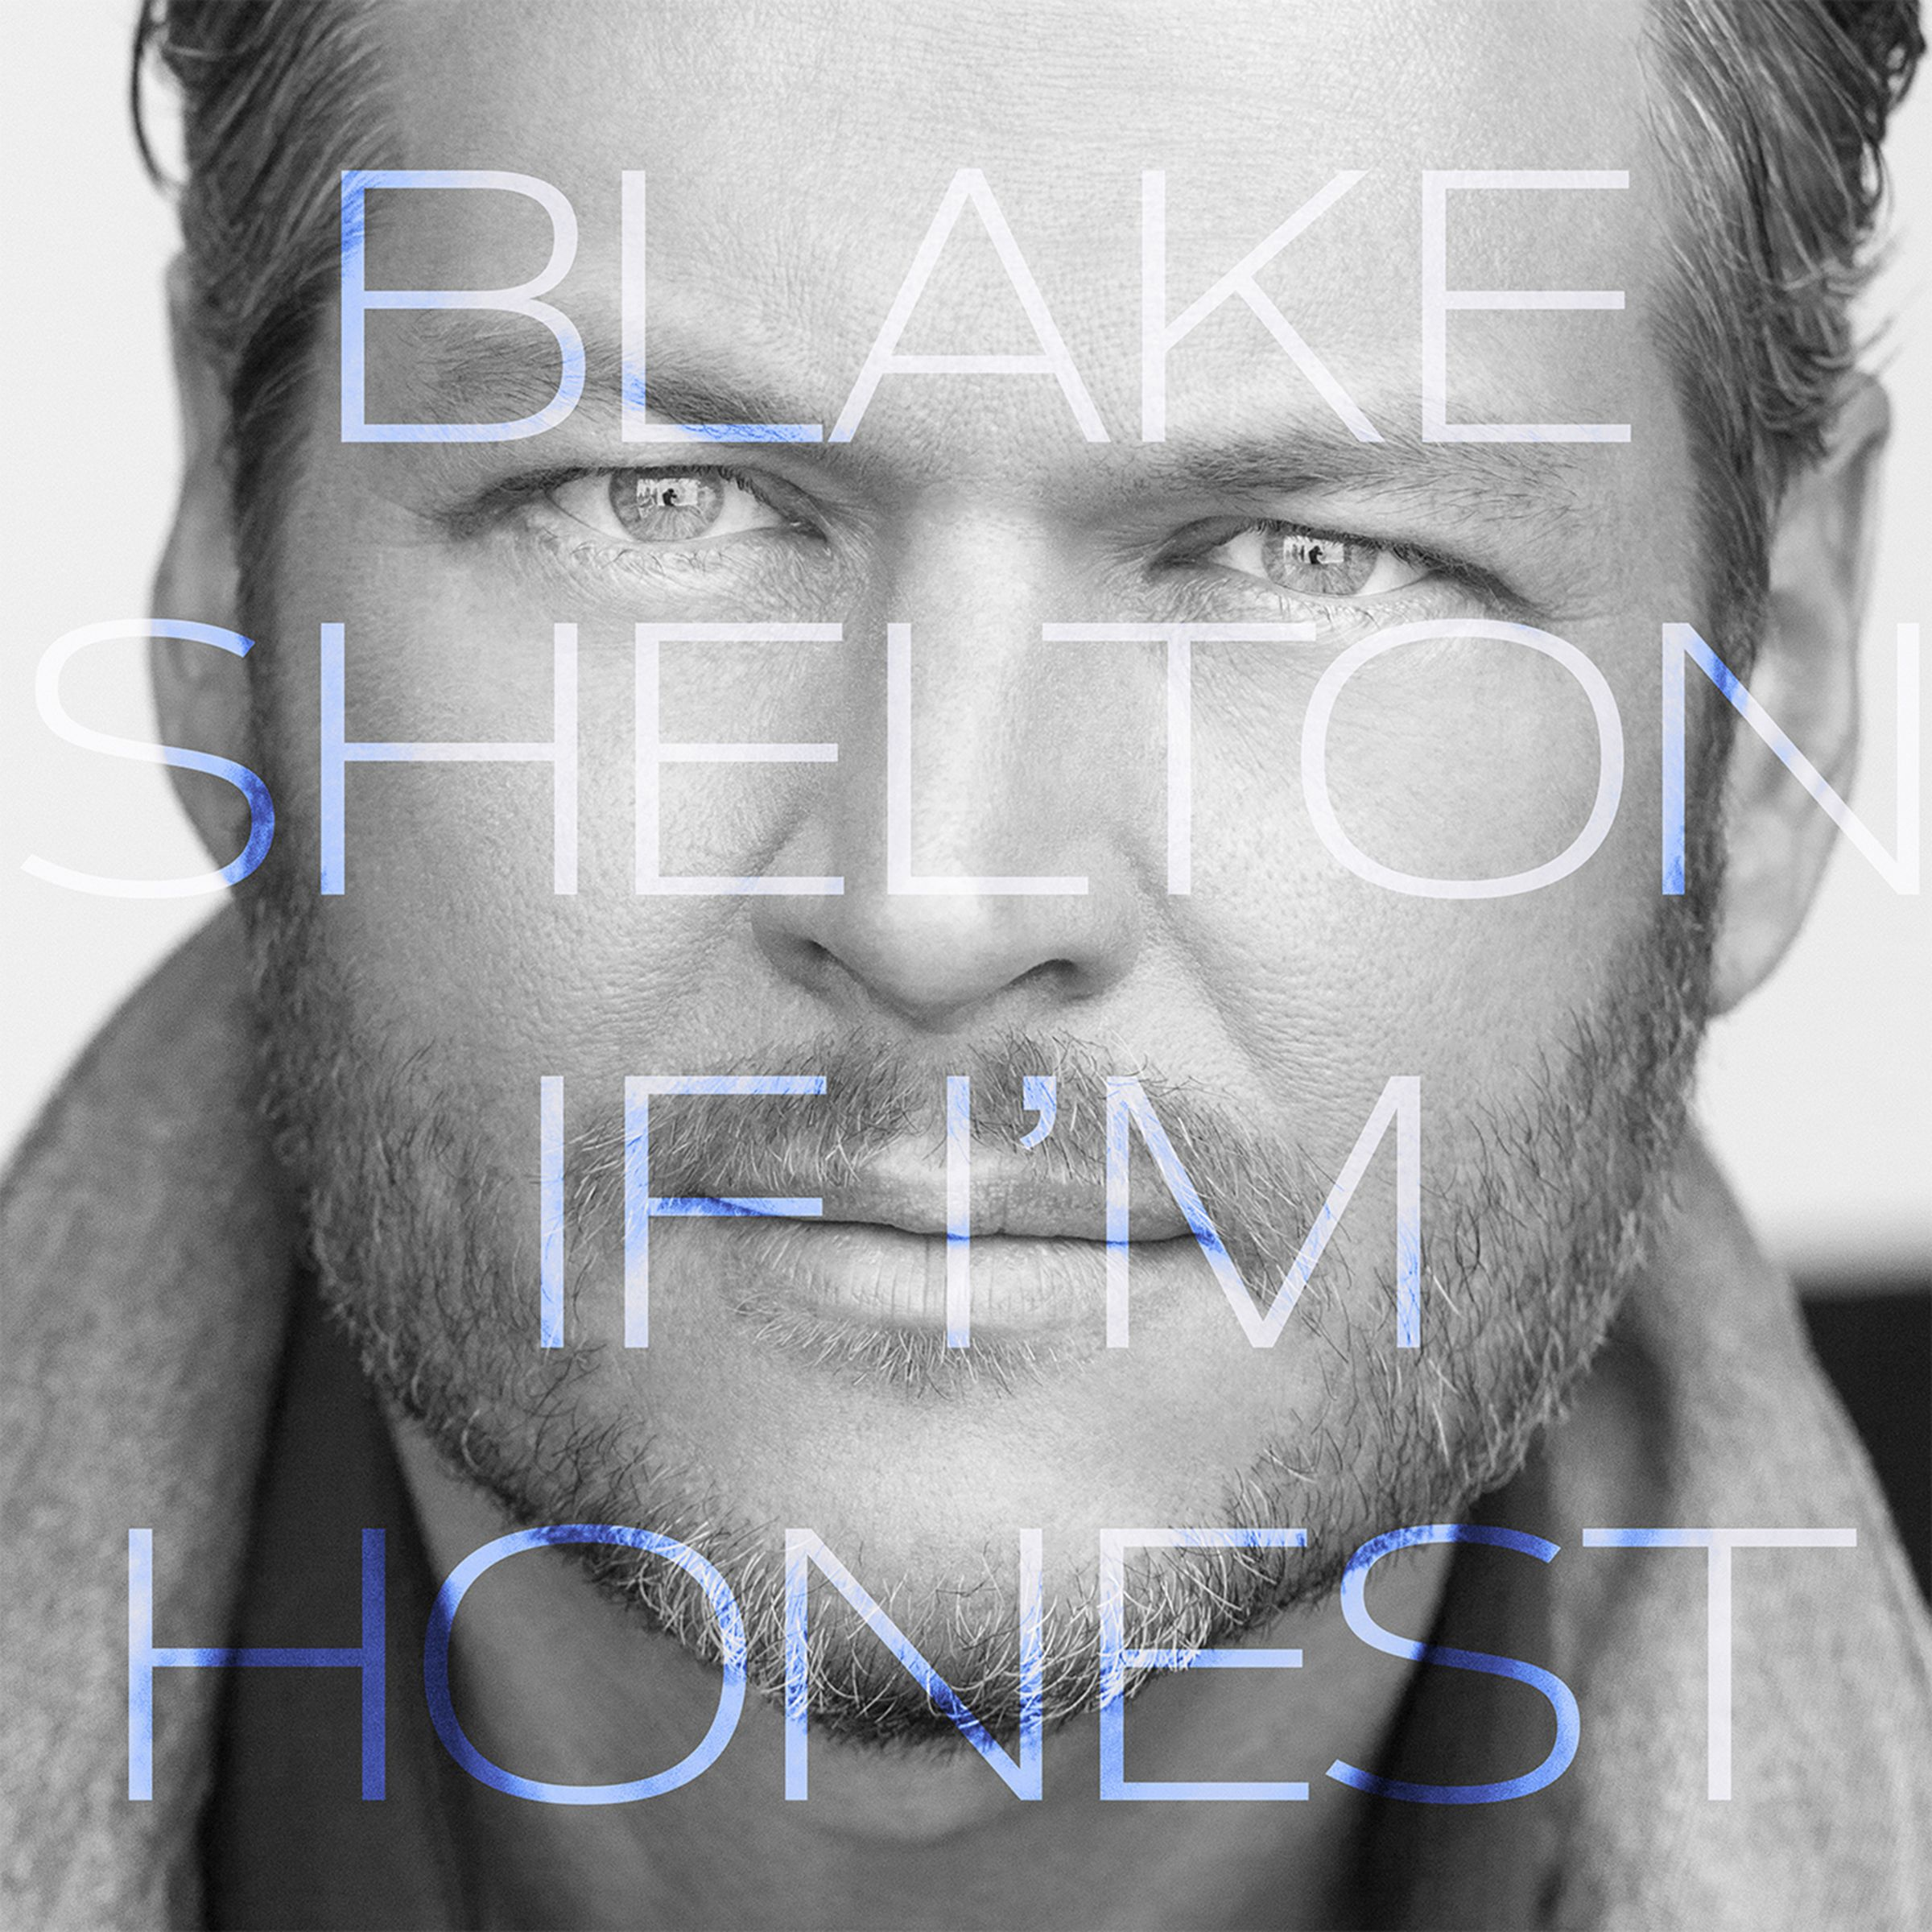 Blake Shelton - If I'm Honest album cover